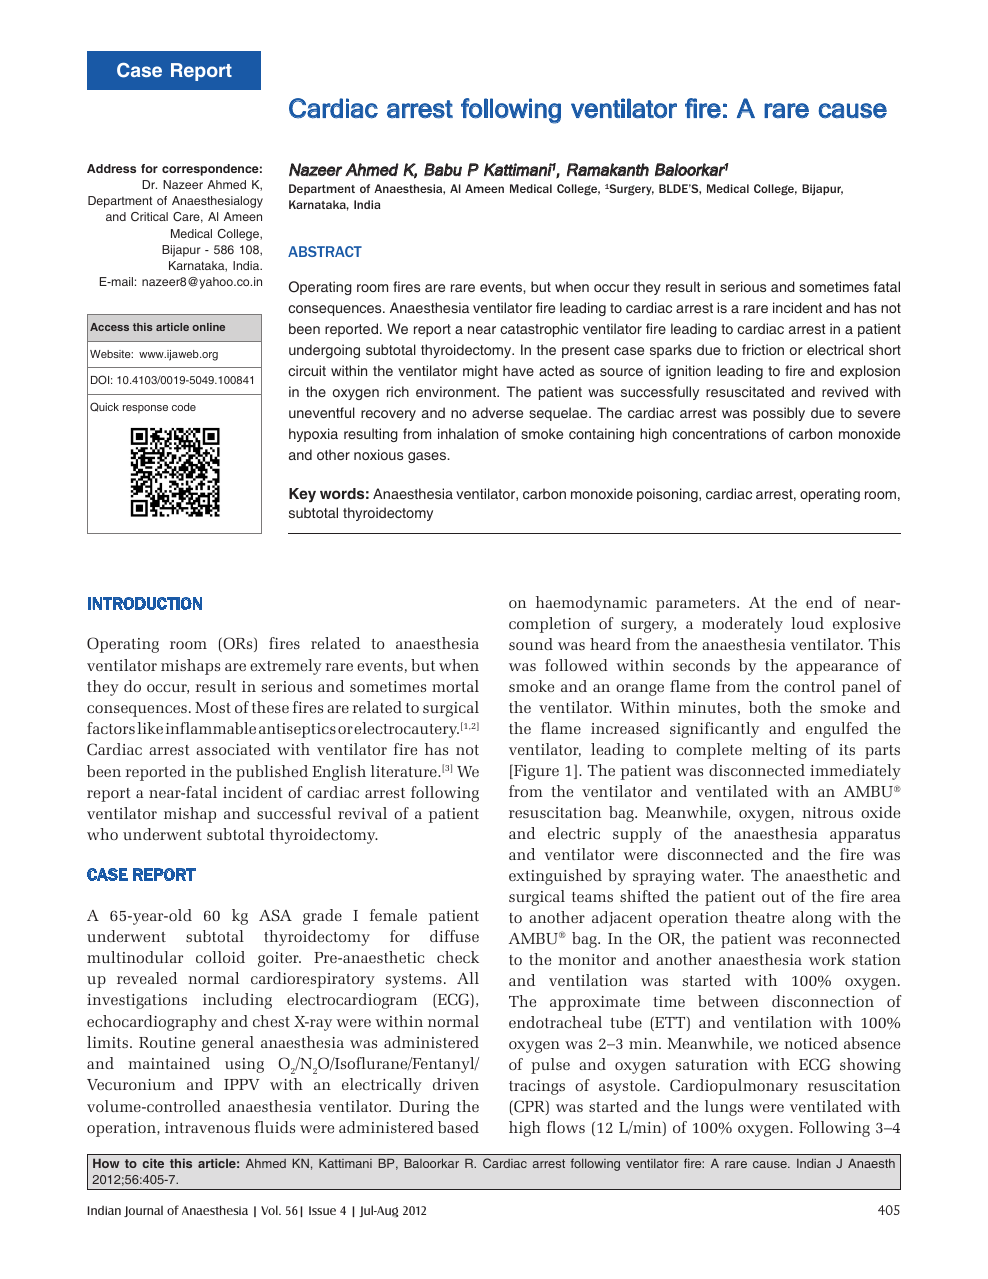 Cardiac arrest following ventilator fire: A rare cause – topic of research  paper in Clinical medicine. Download scholarly article PDF and read for  free on CyberLeninka open science hub.